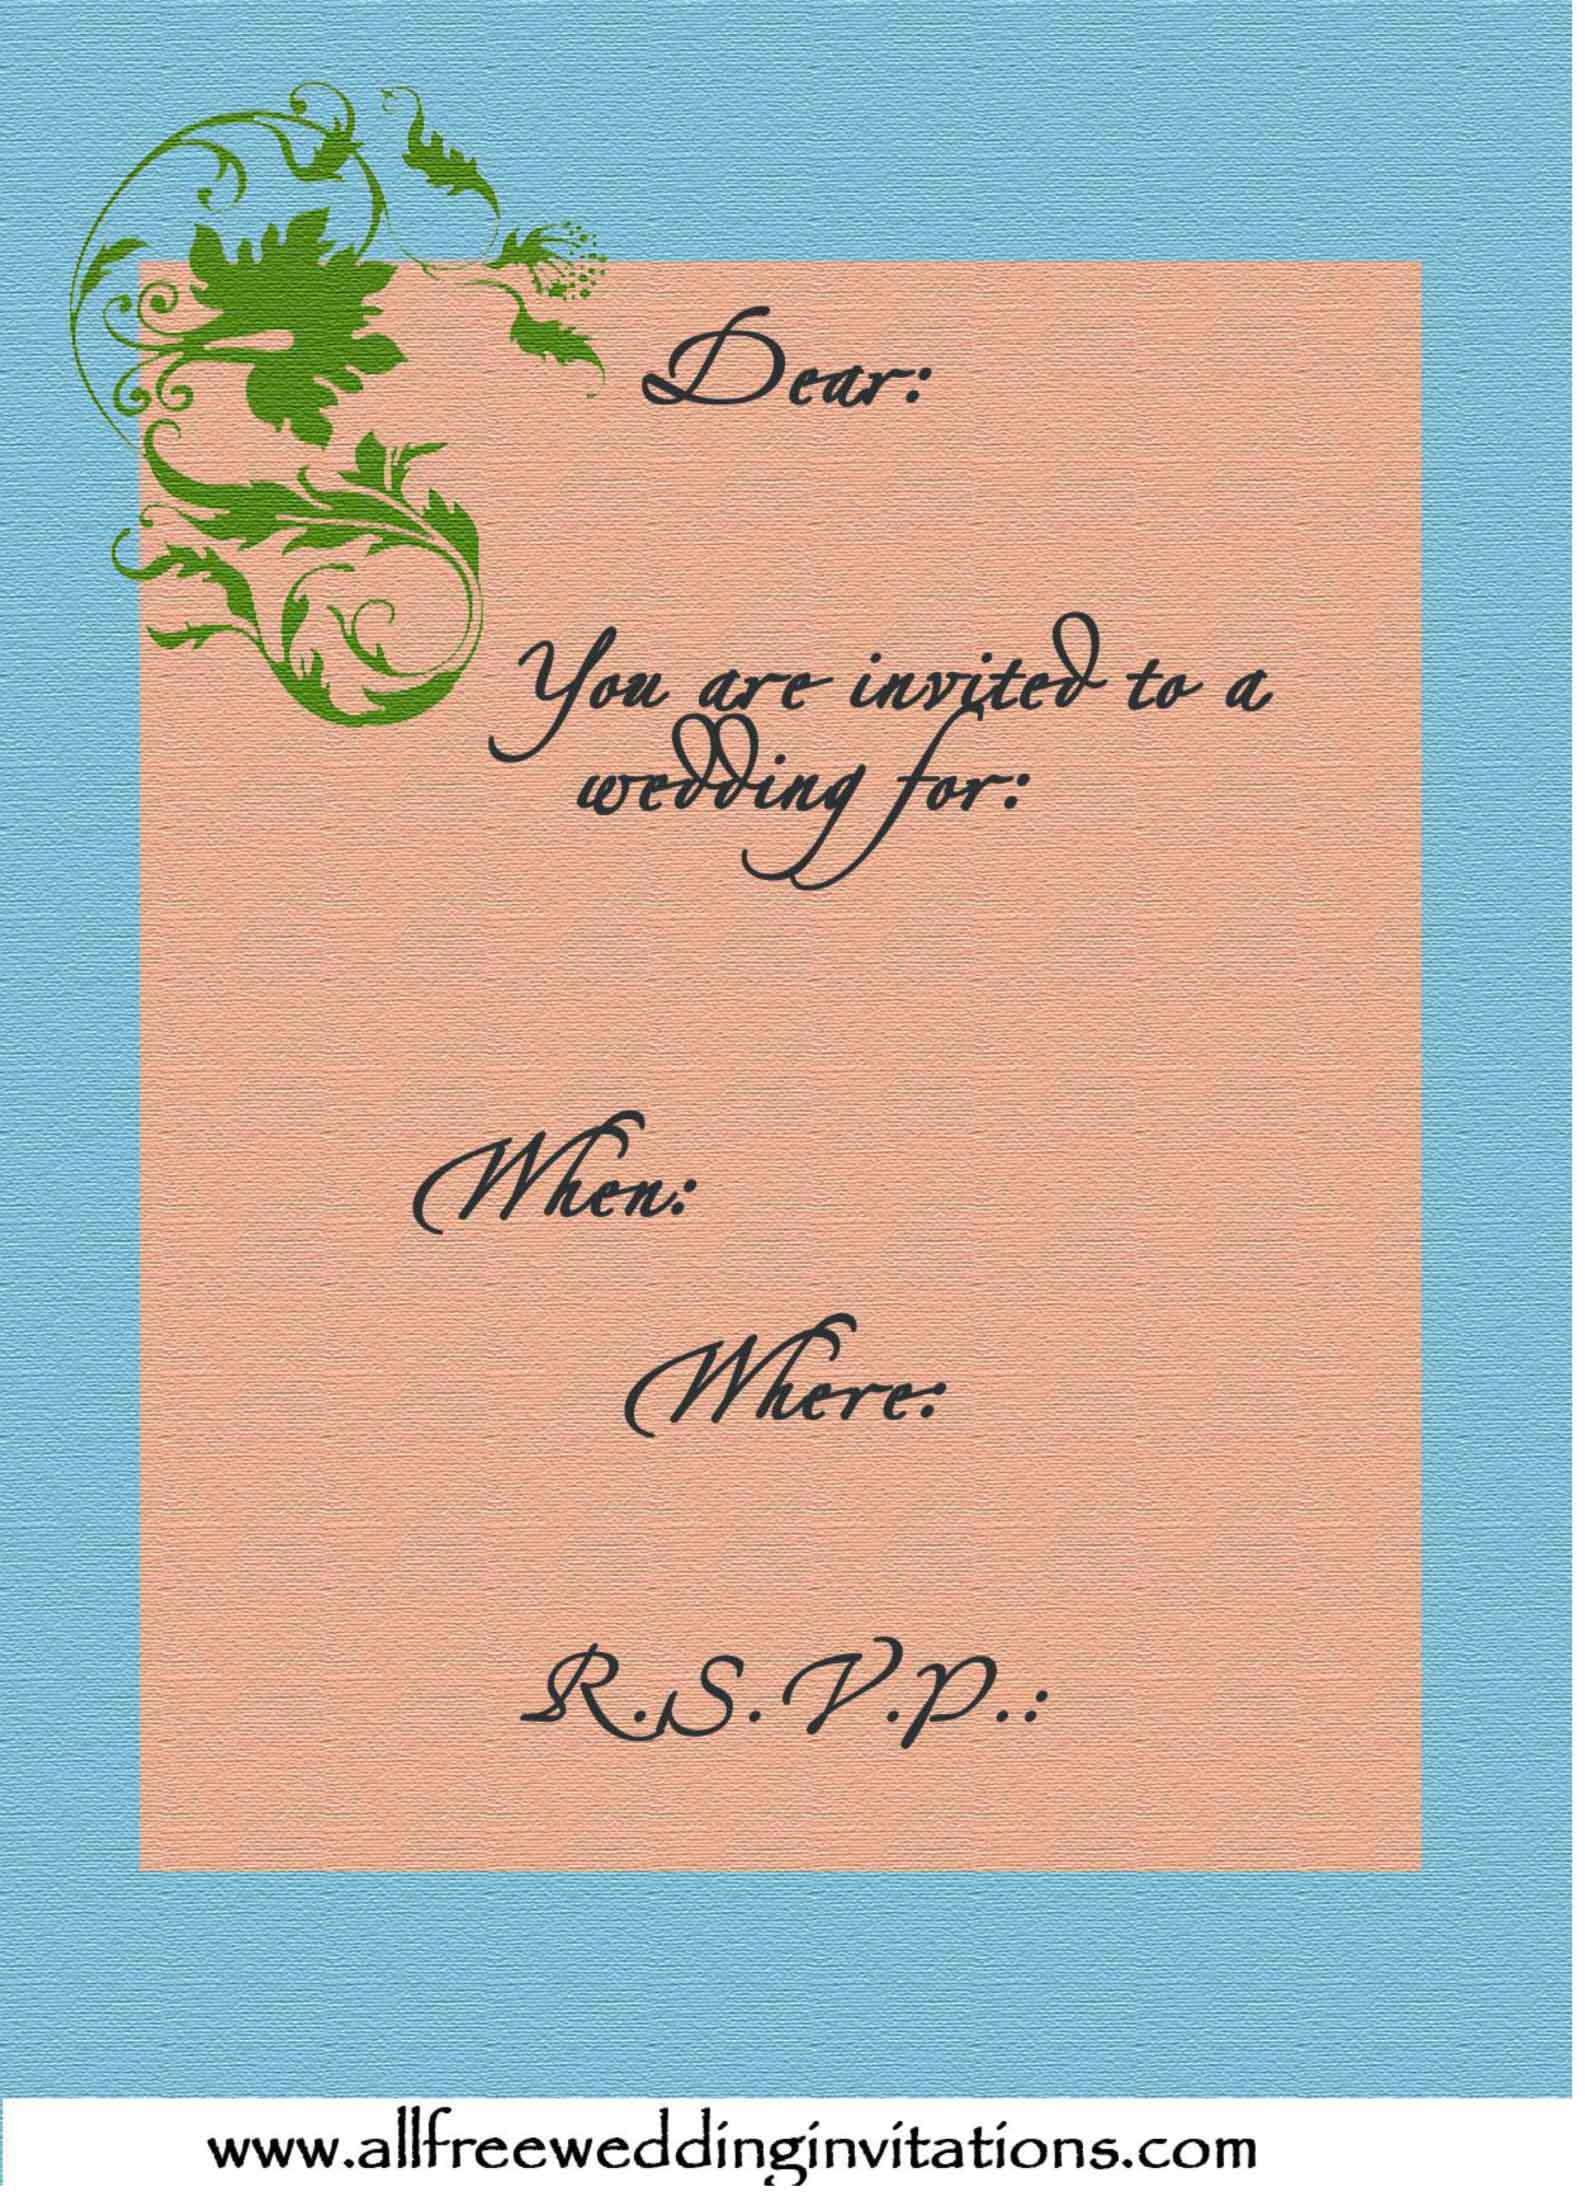 blue and pale orange with green trim wedding invite